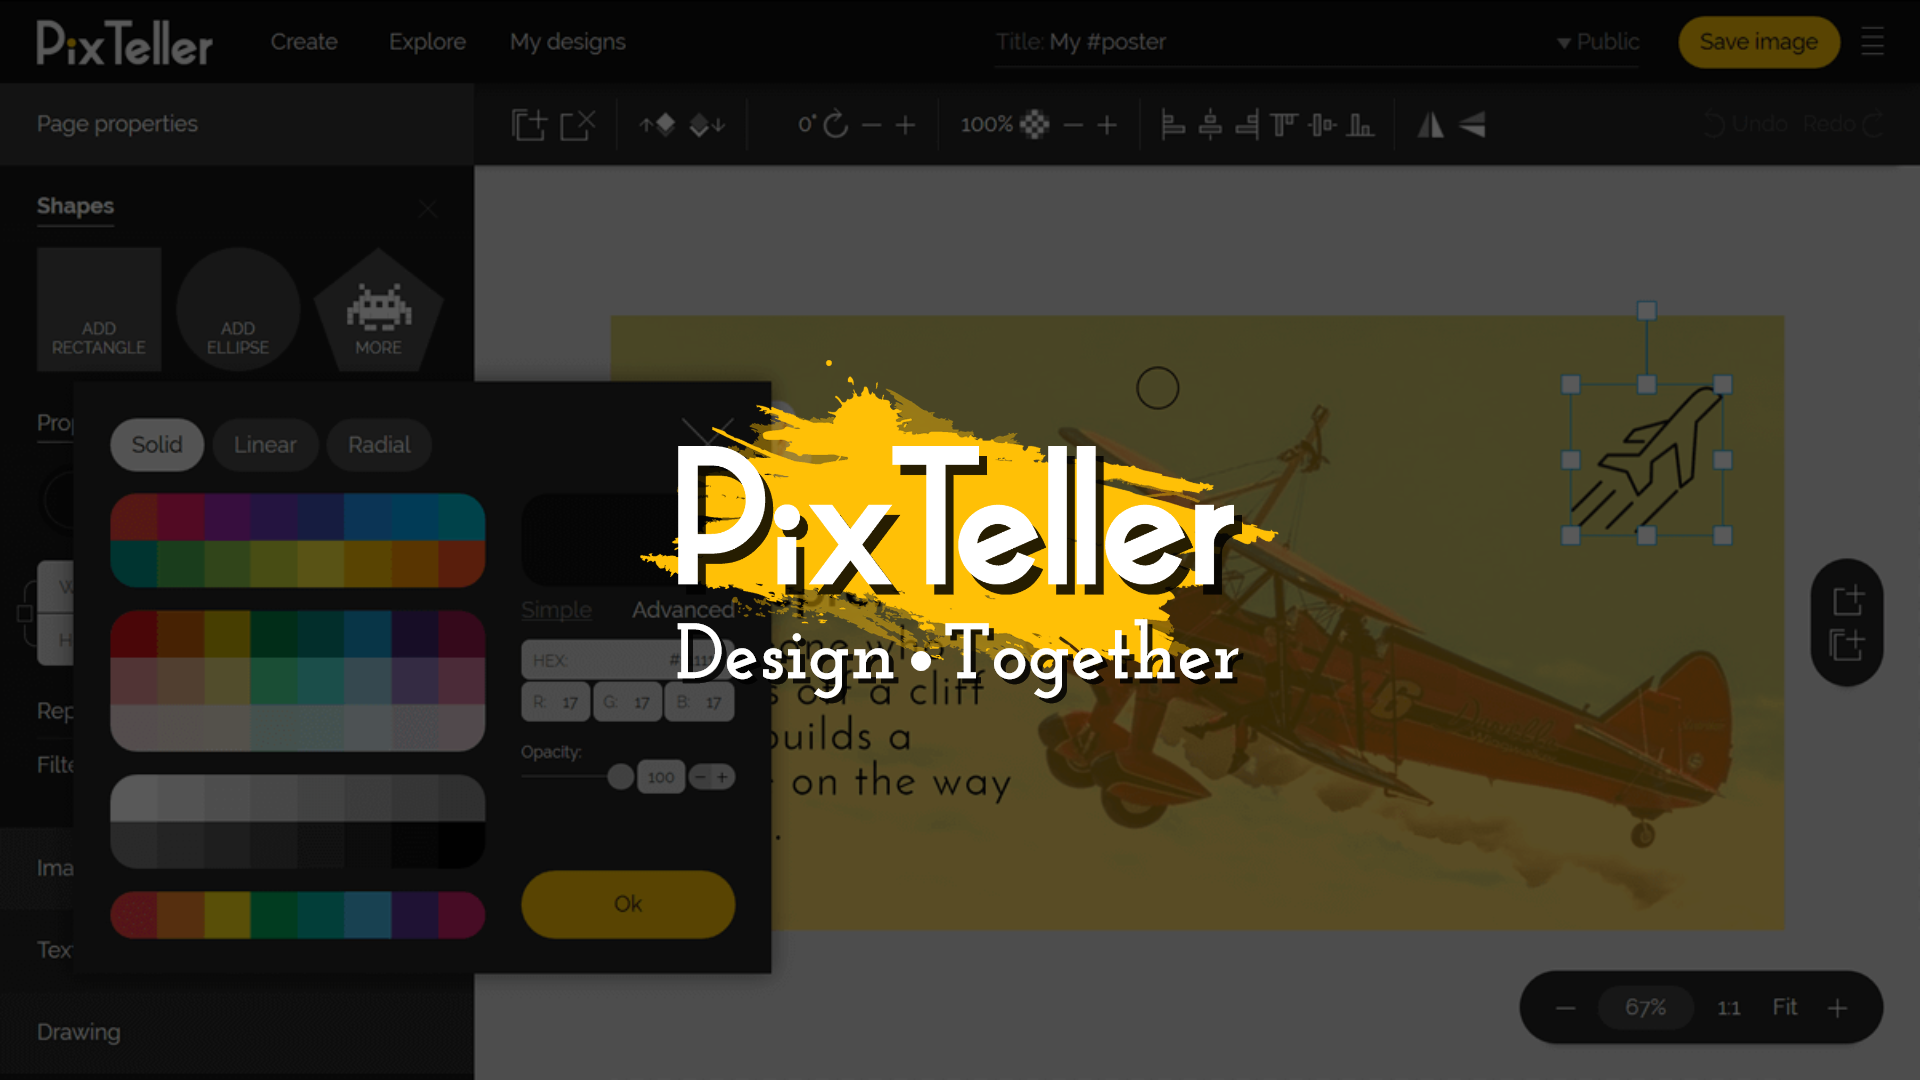 Design together with PixTeller design tool